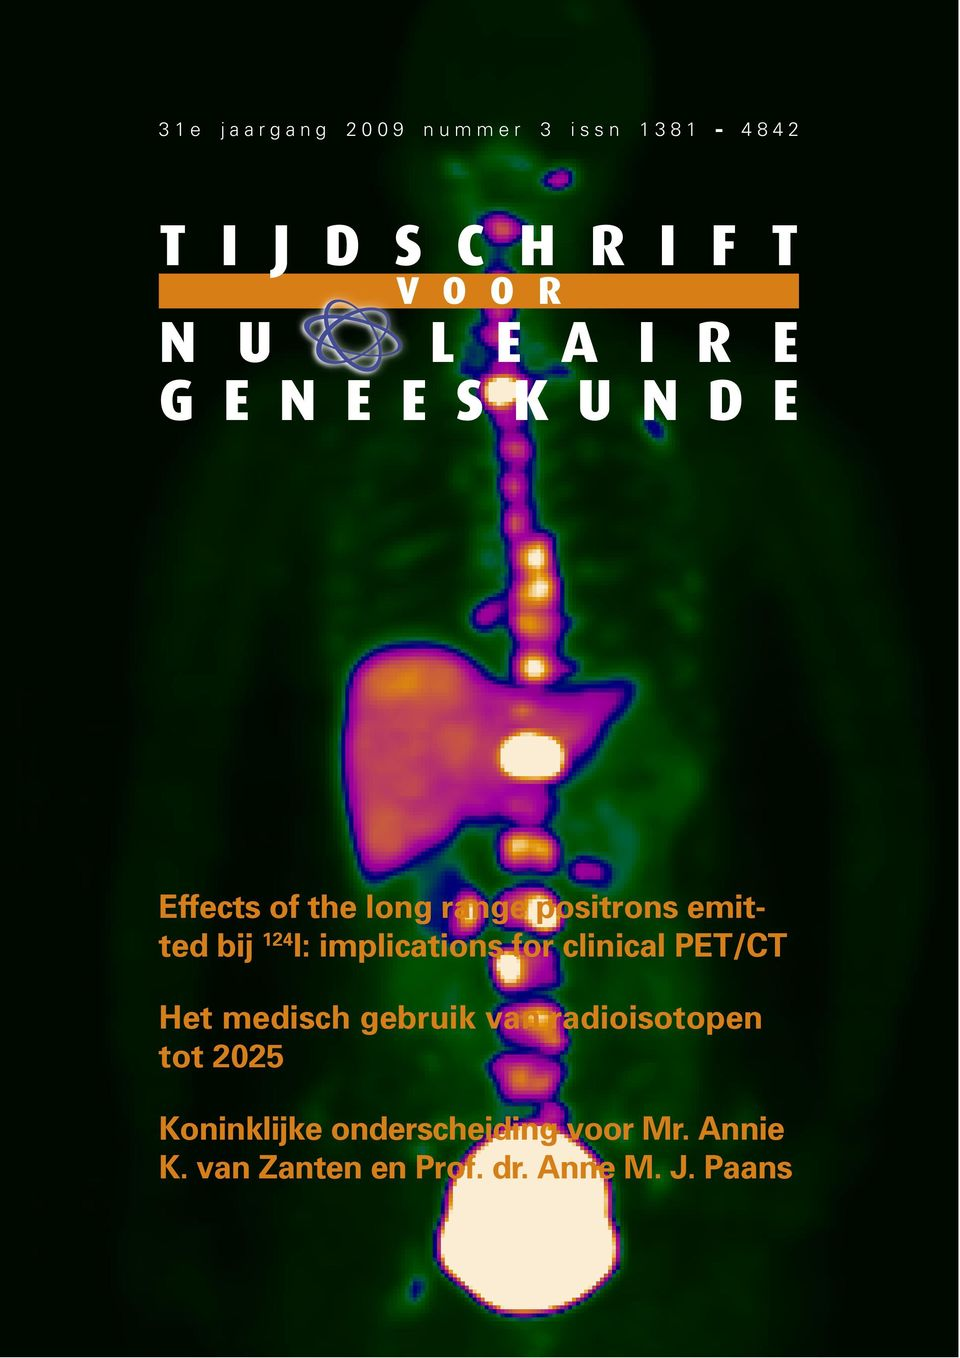 implications for clinical PET/CT Het medisch gebruik van radioisotopen tot 2025